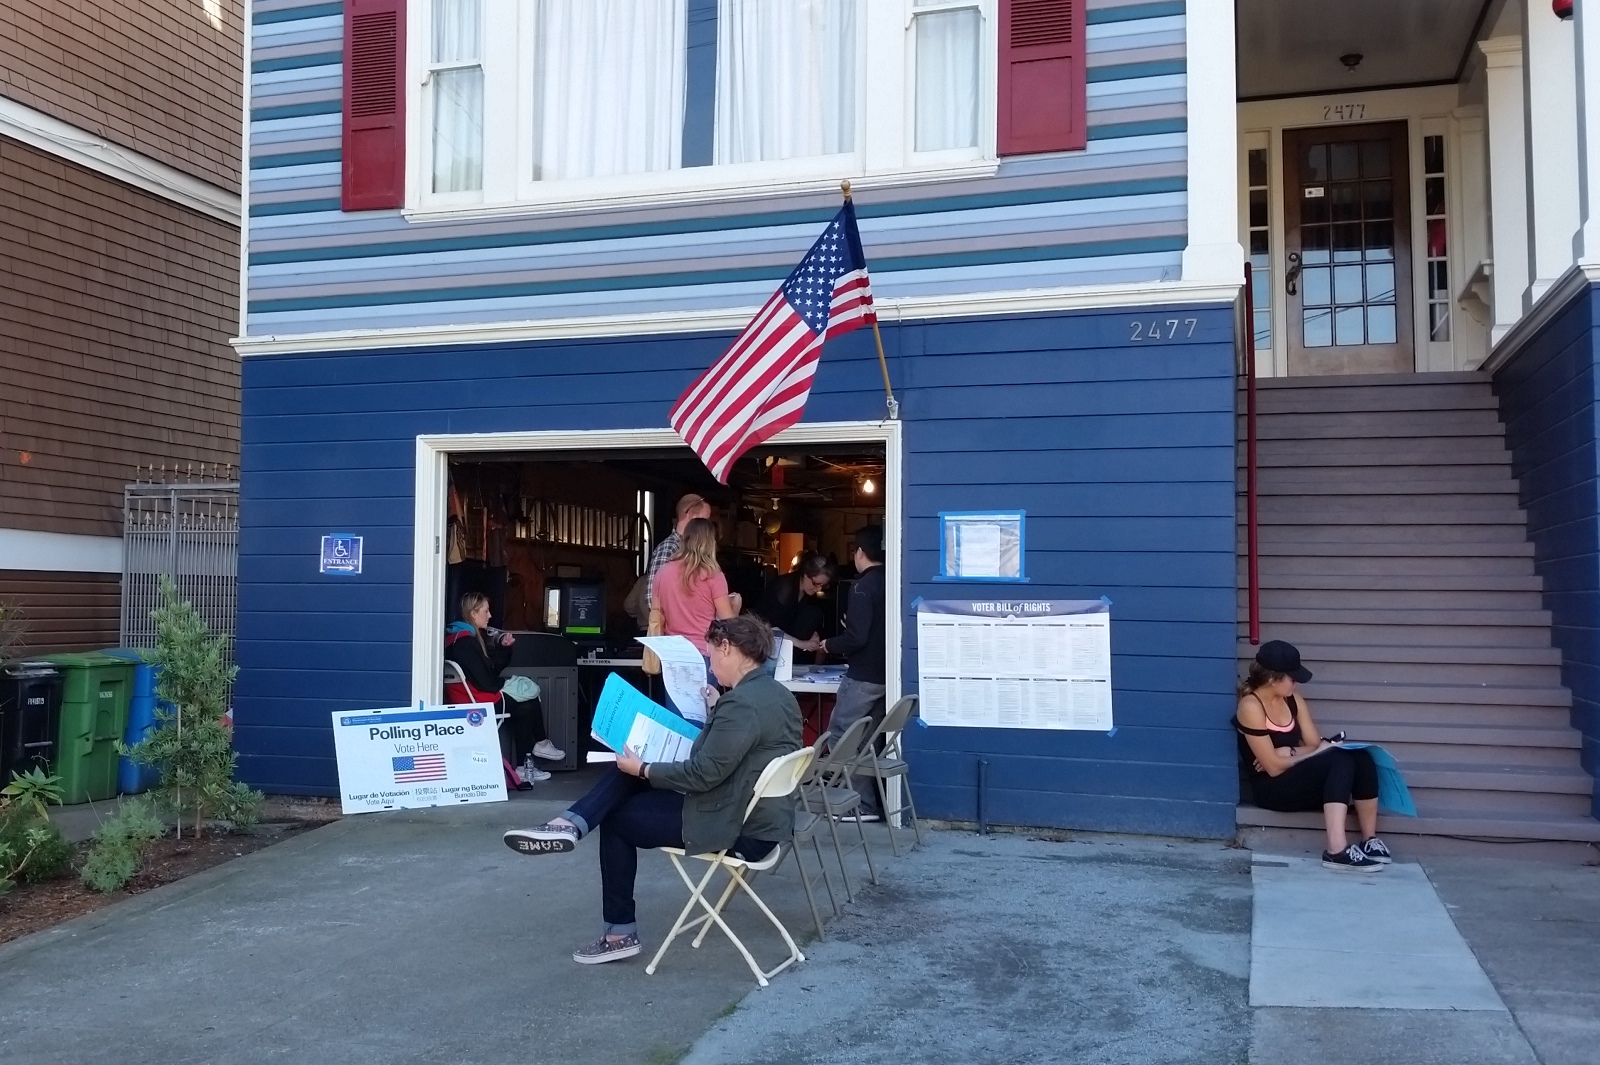 Polling place in a residential garage in San Francisco